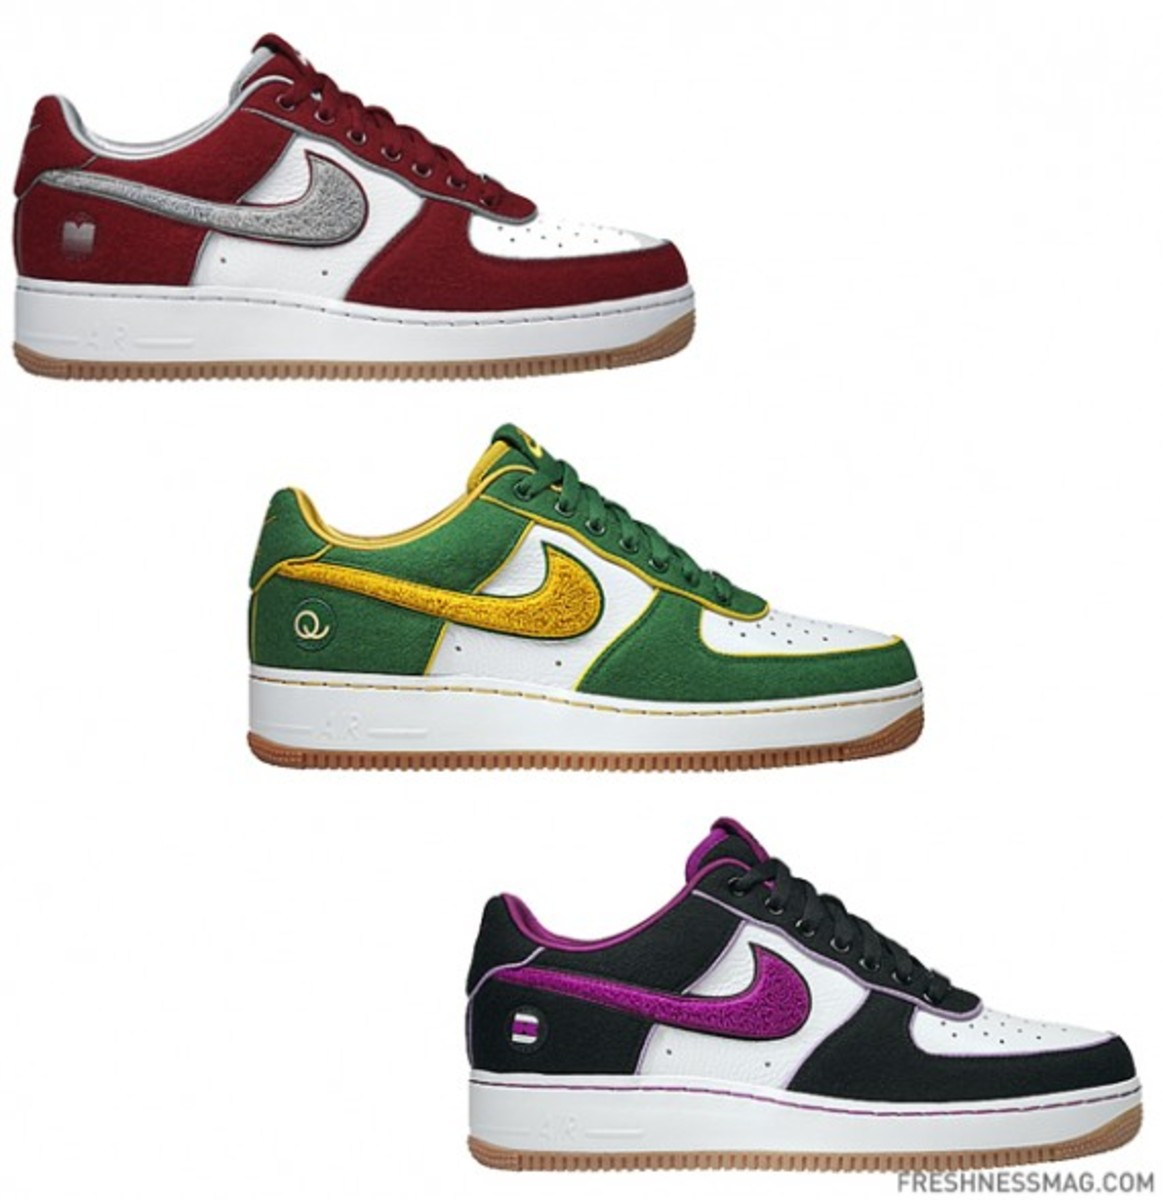 Supreme Boroughs PackManhattanQueens 5 Force 1 Nike Air Low srdhQCt